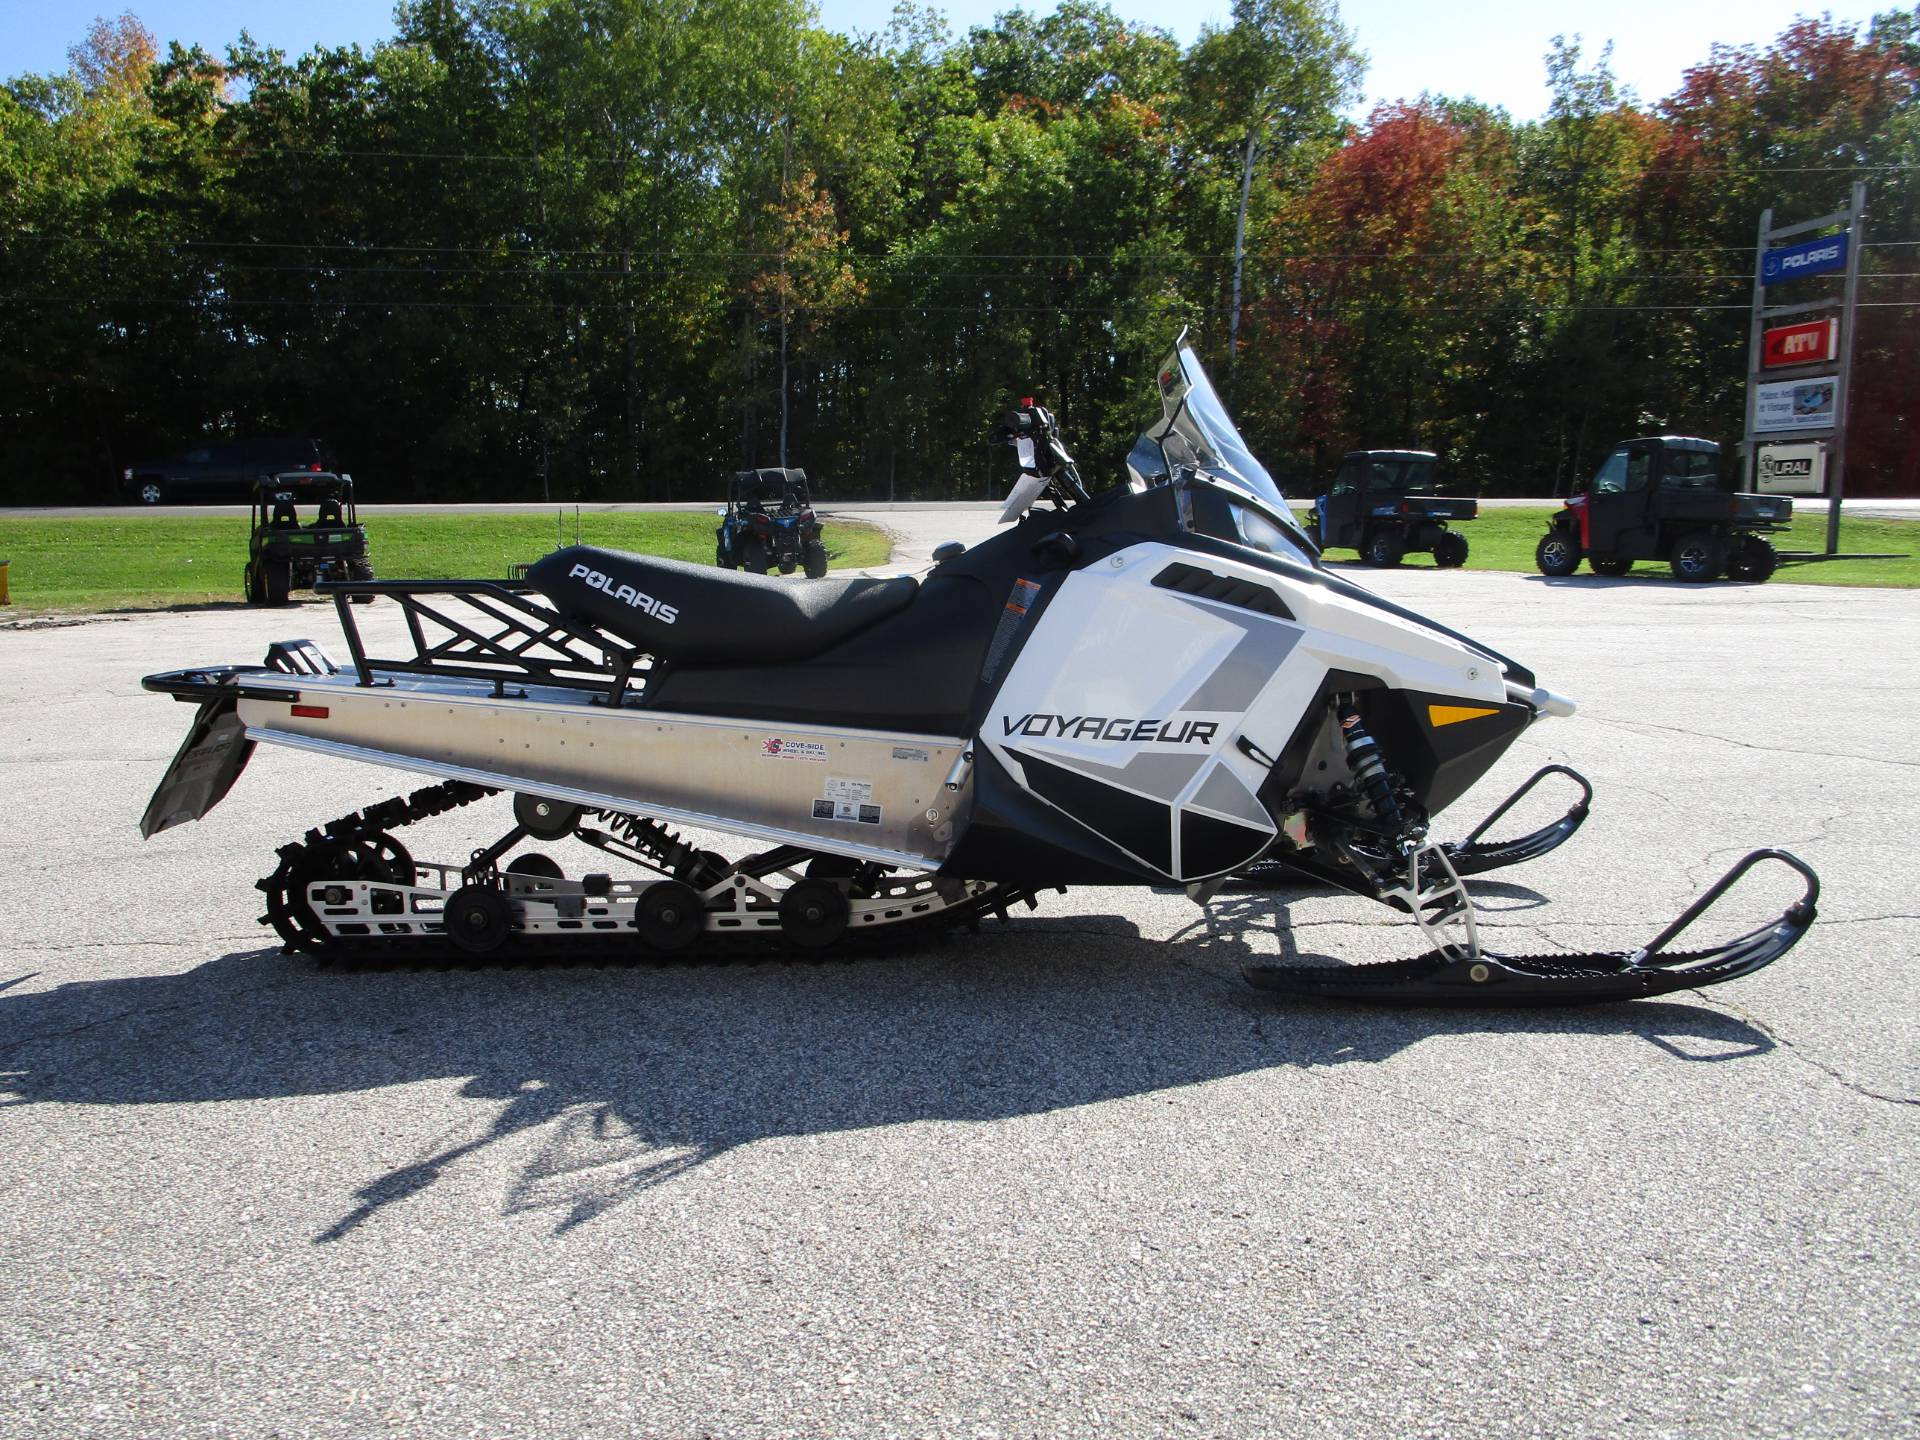 2020 Polaris 550 Voyageur 144 ES in Newport, Maine - Photo 1